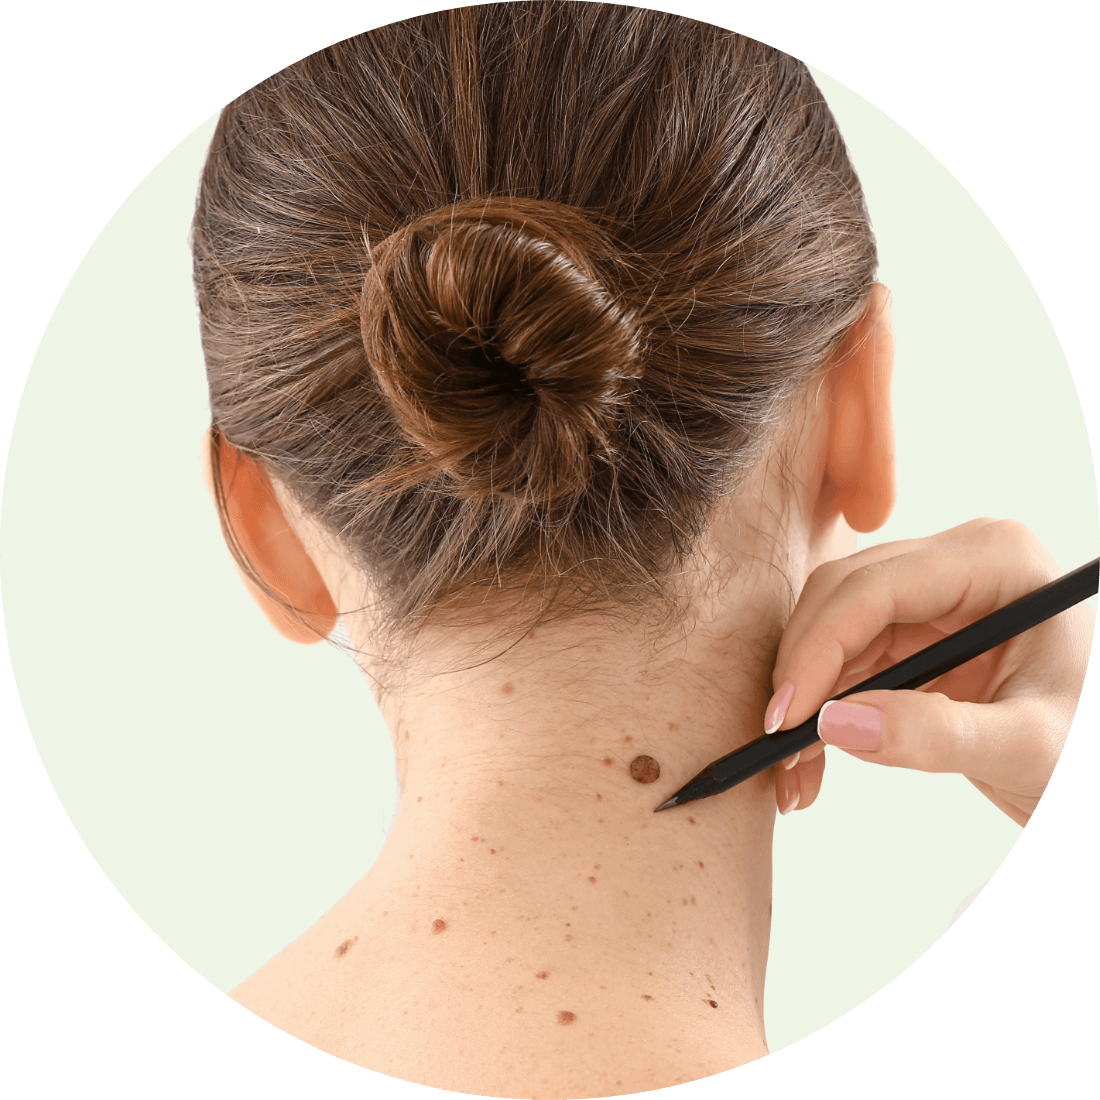 Why do people choose Mole Removal?